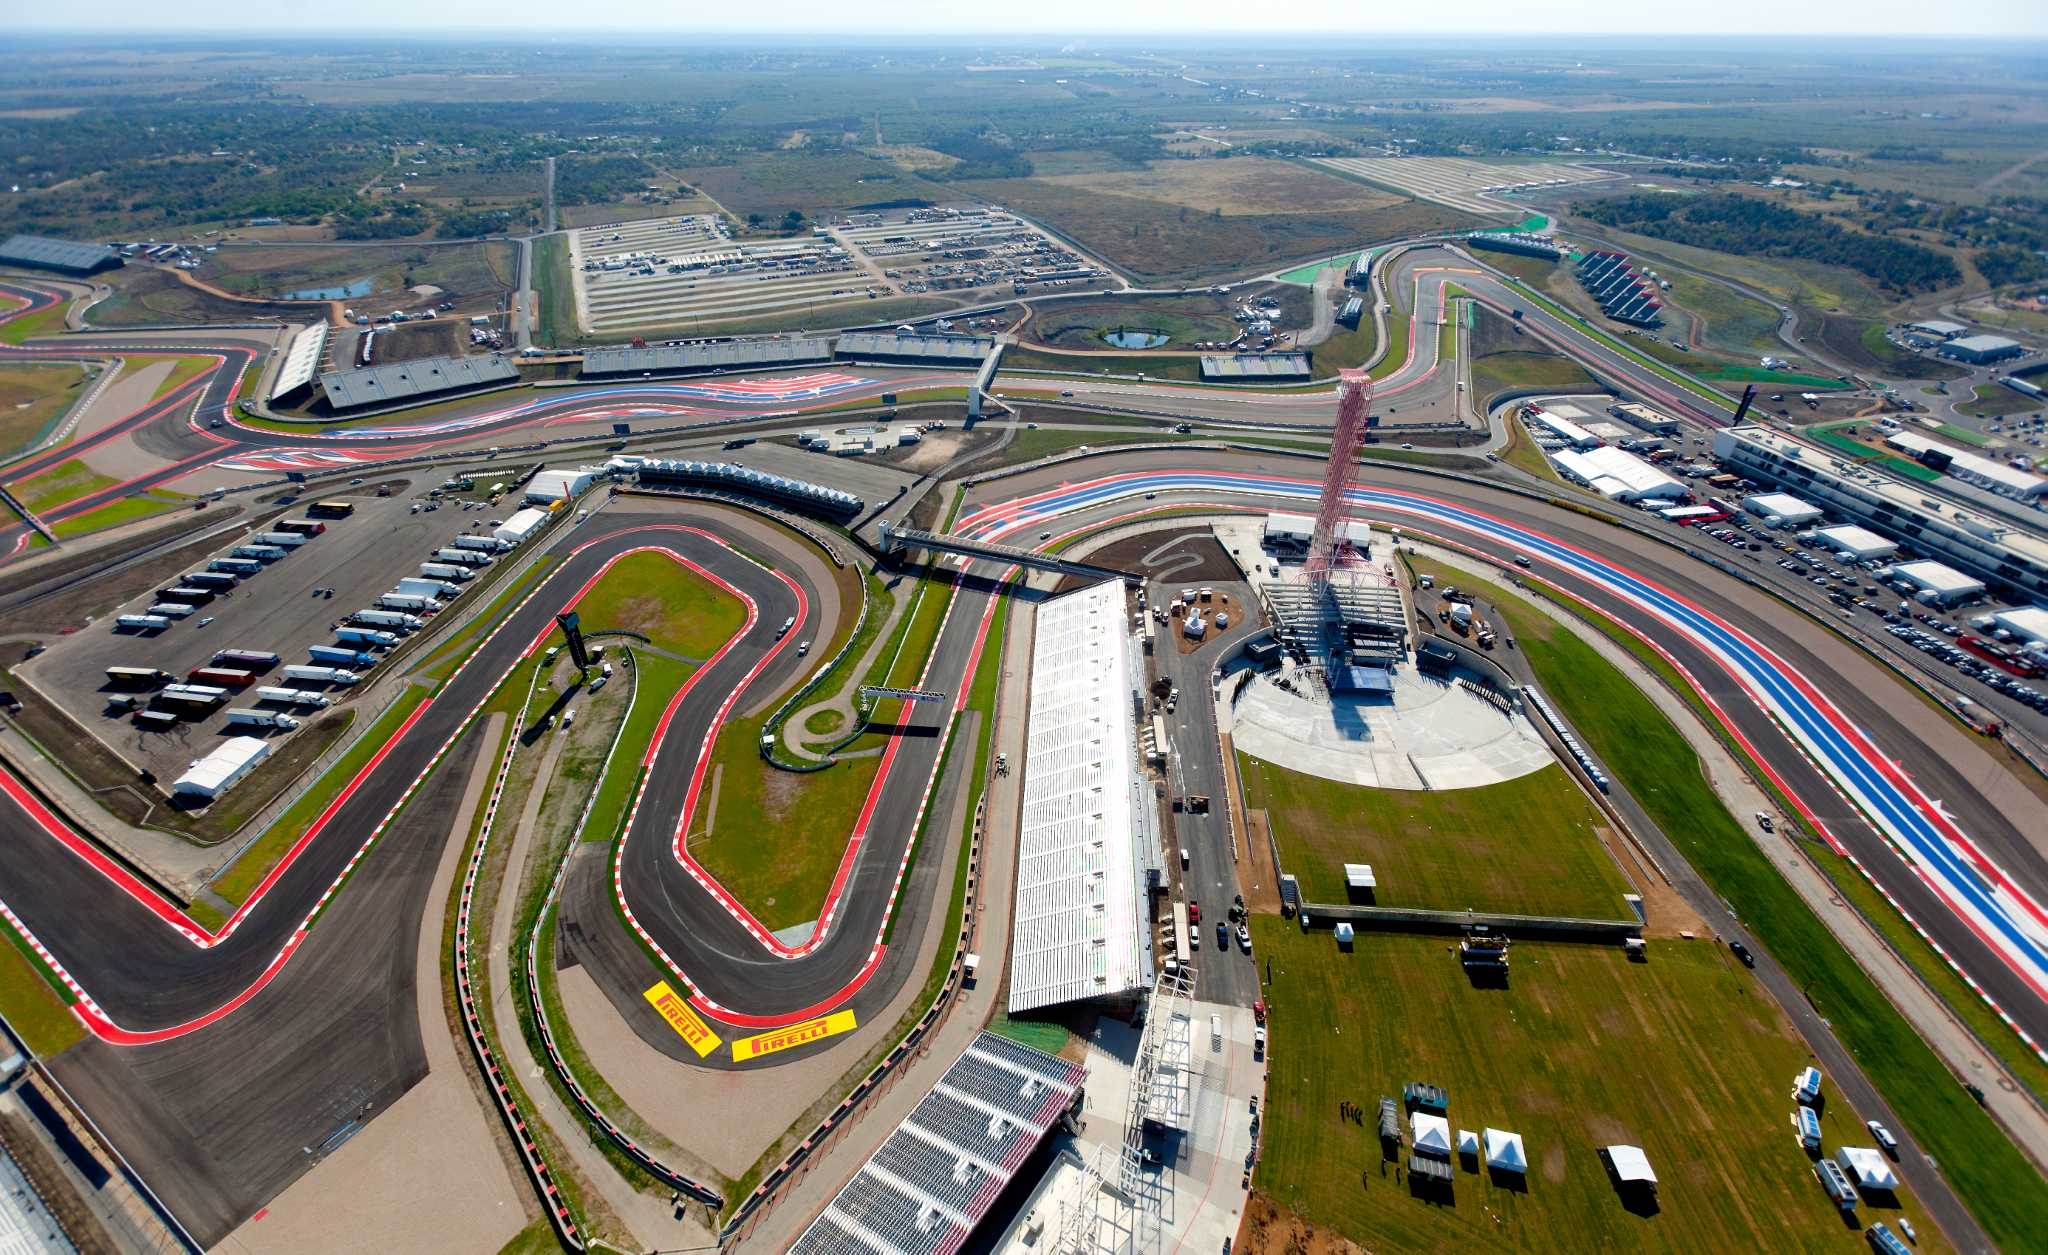 Formula One's Mexican fans expected to boost S.A. tourism - San Antonio Express-News